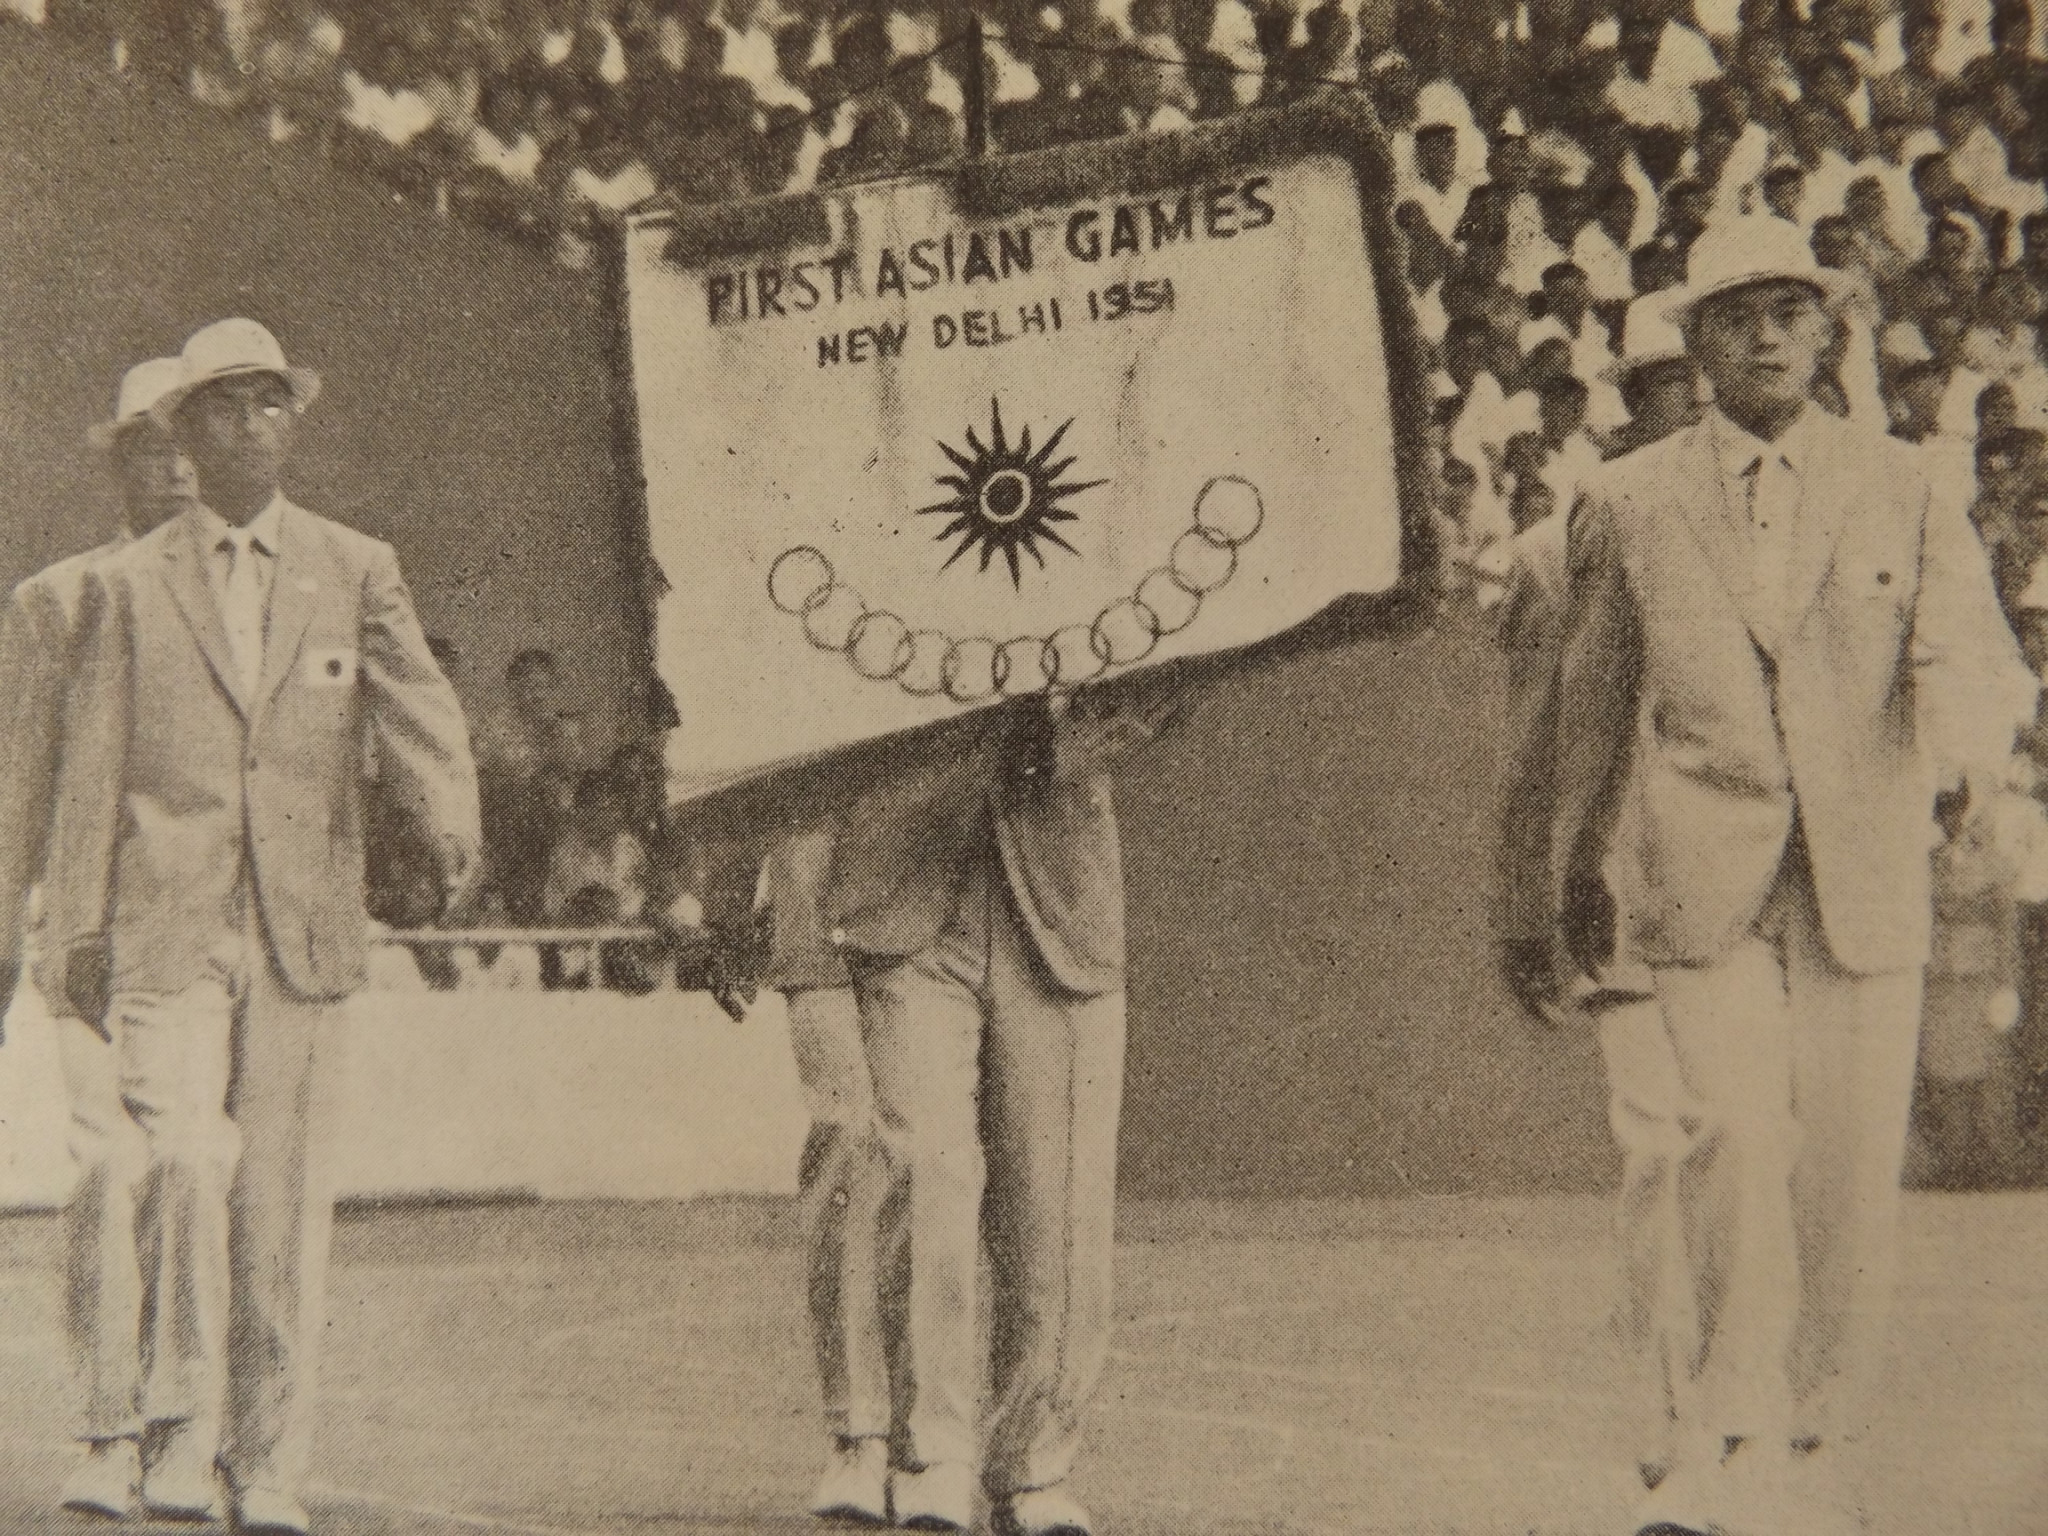 A group from Japan march in the official Asian Games from the first edition of the event at New Delhi in 1951 ©Official Report Jakarta 1962